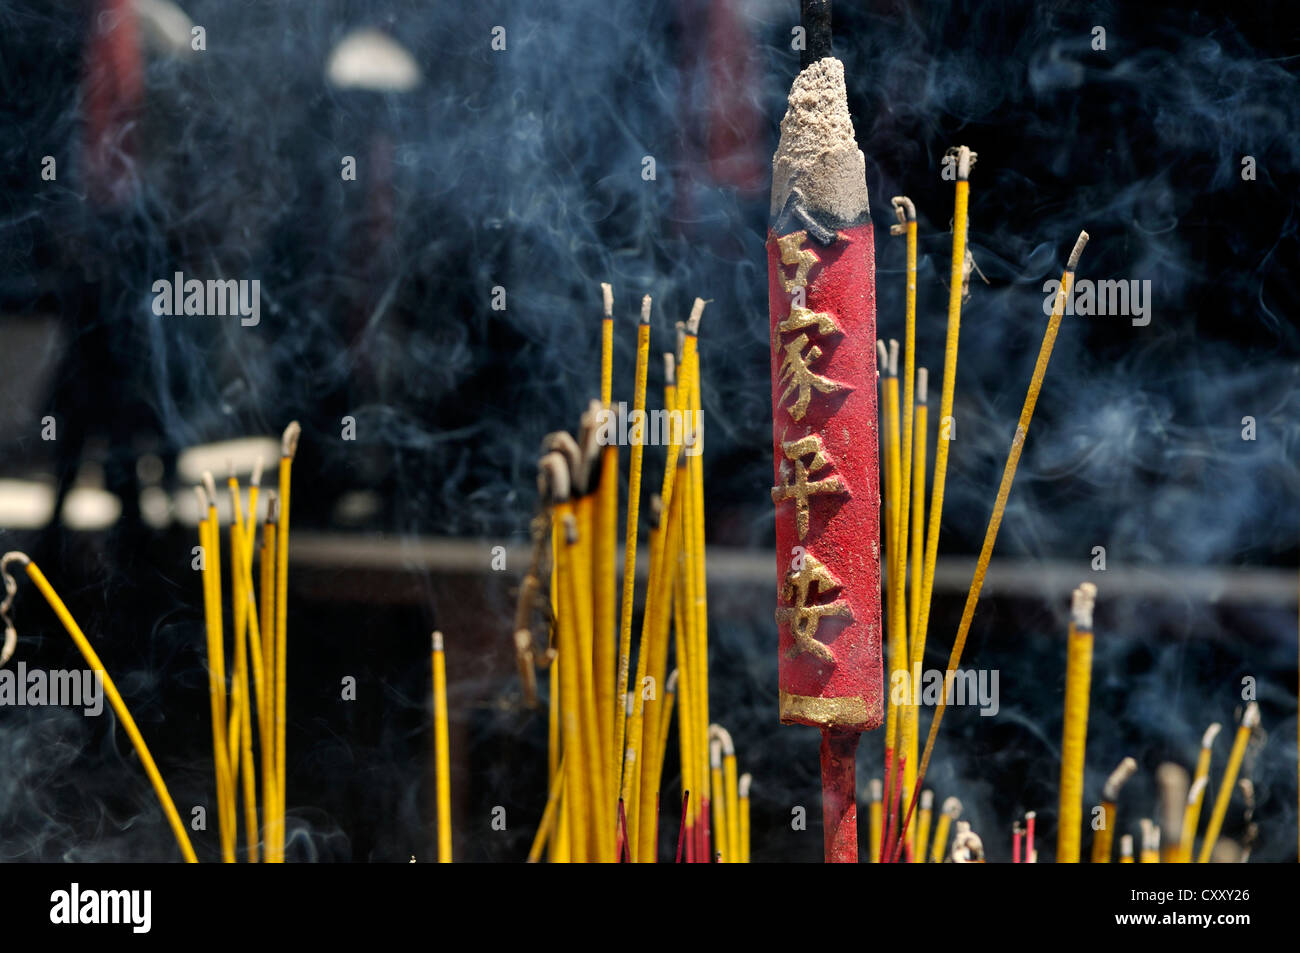 Incense, Vietnam, Southeast Asia, Asia - Stock Image